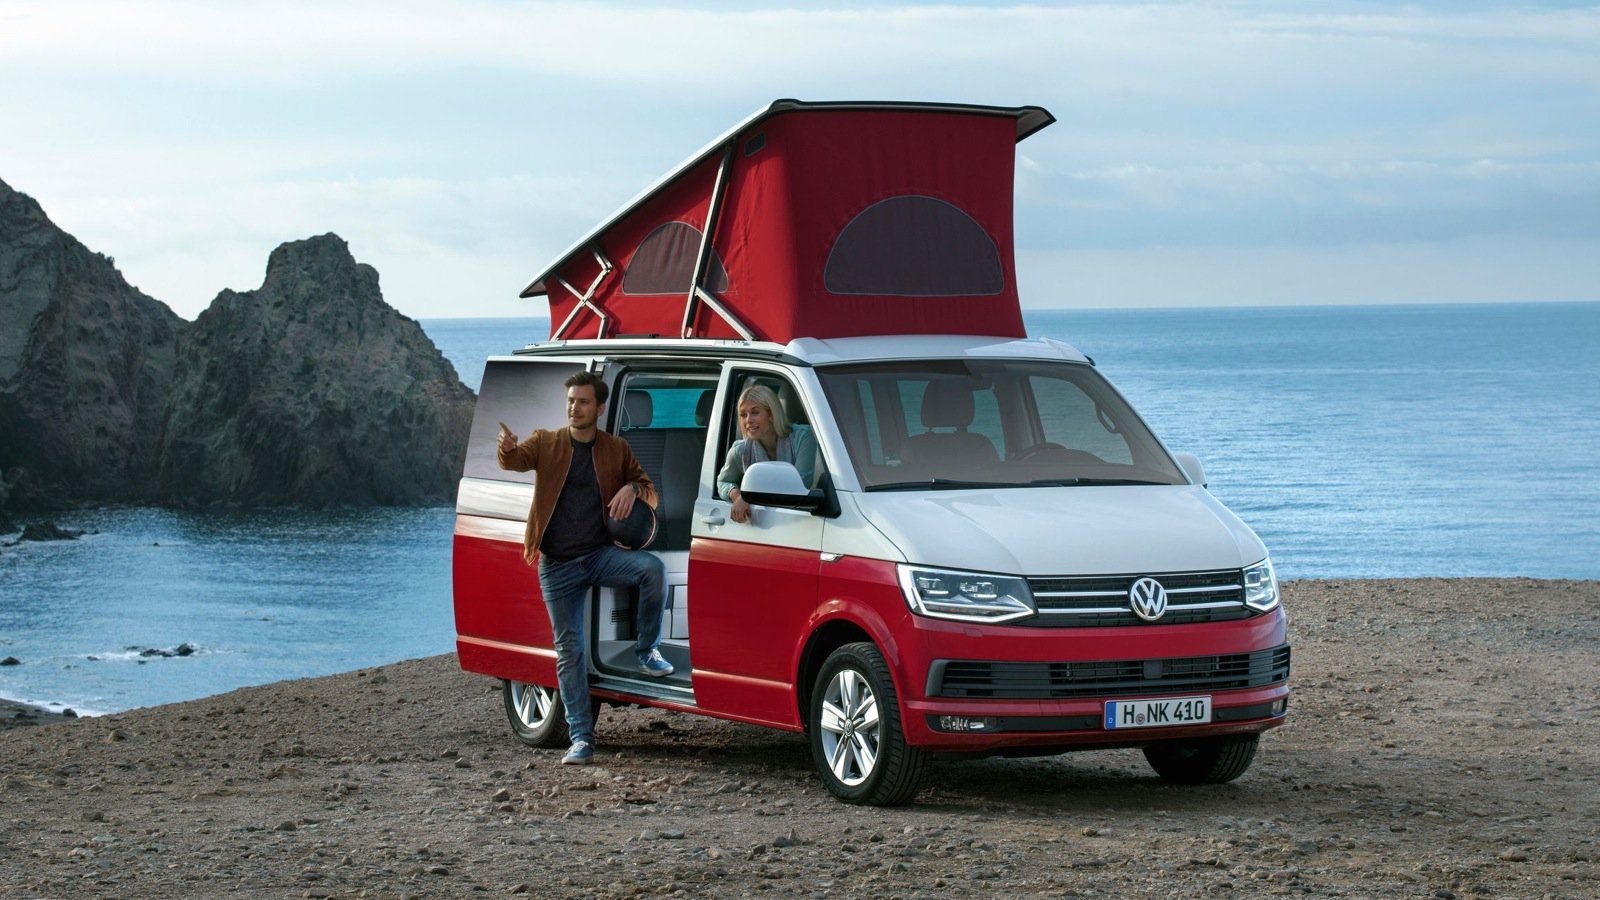 Volkswagen camper photo - 2